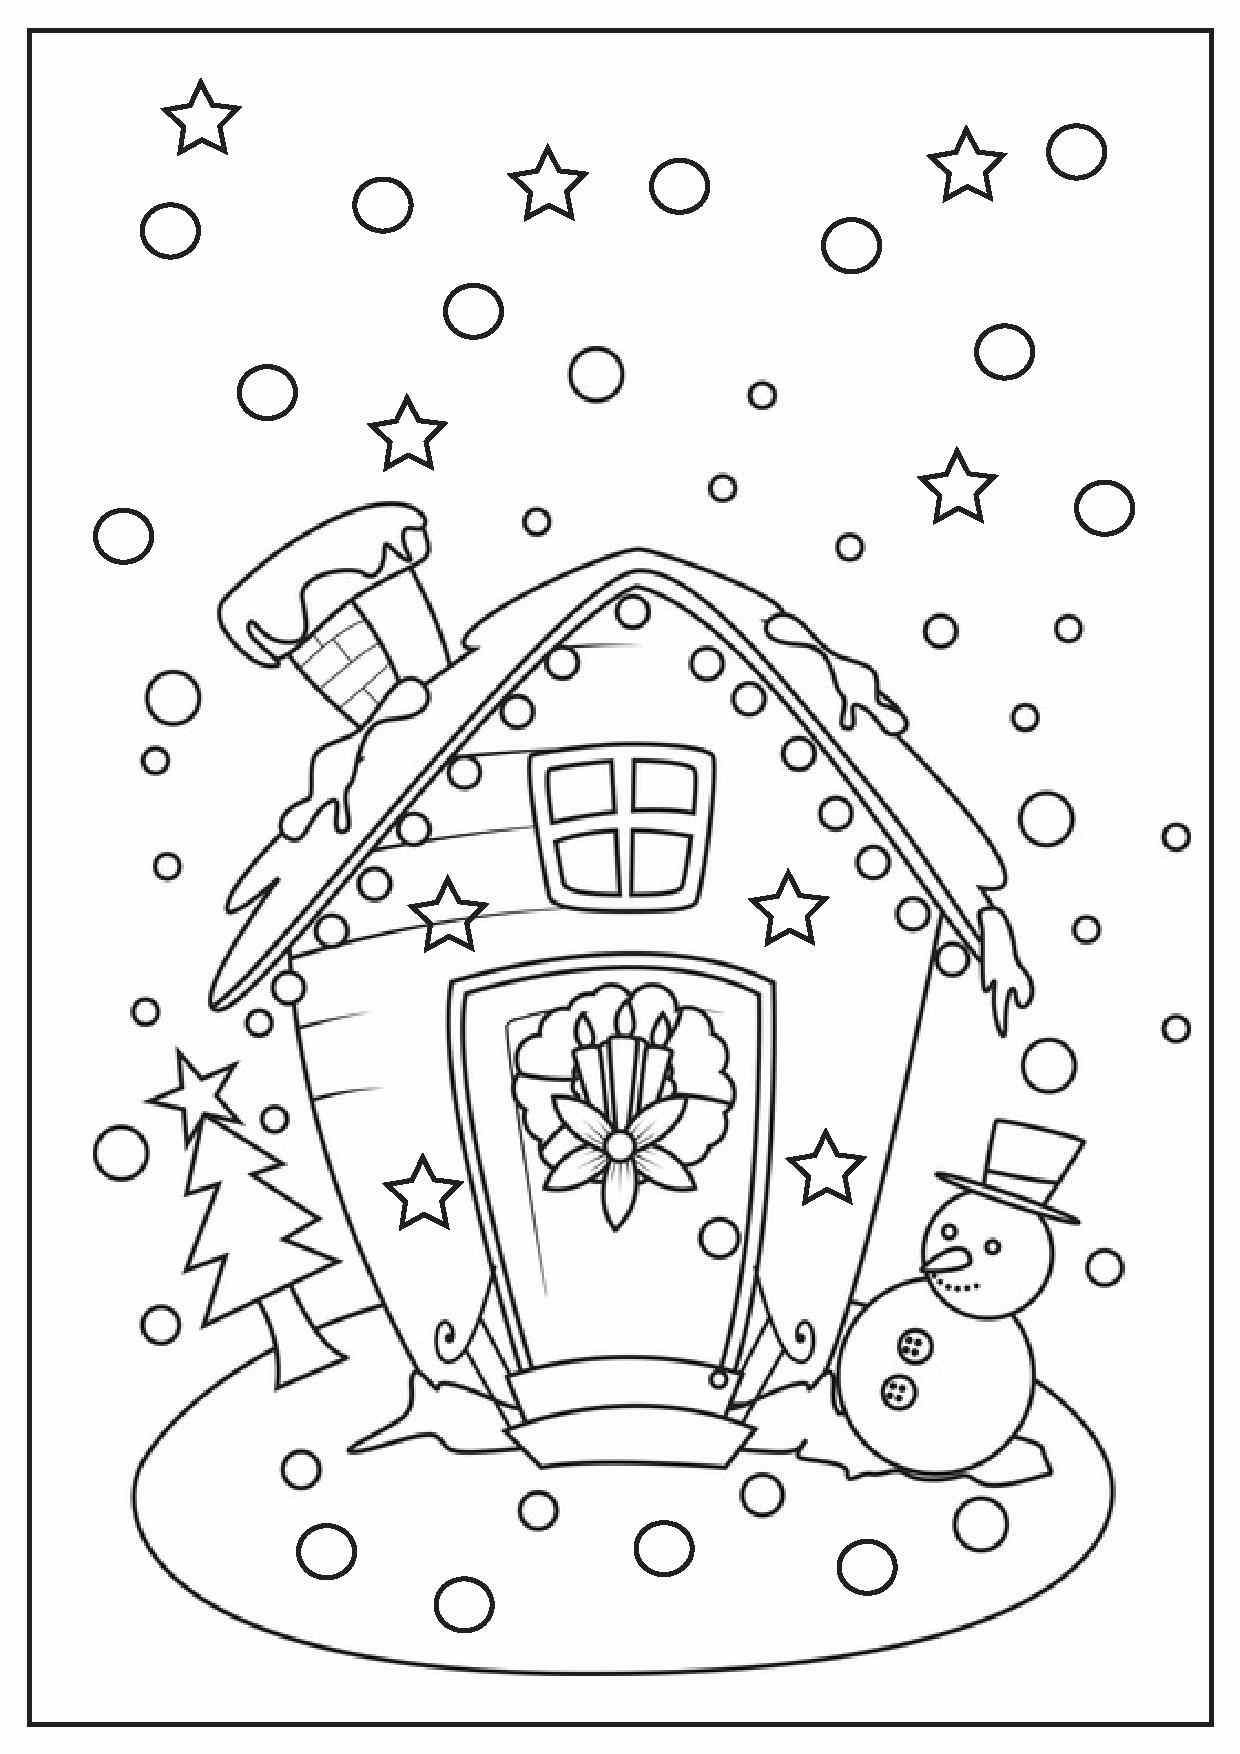 Christmas coloring activities printable - Christmas Coloring Pages Printable Redwork Embroidery